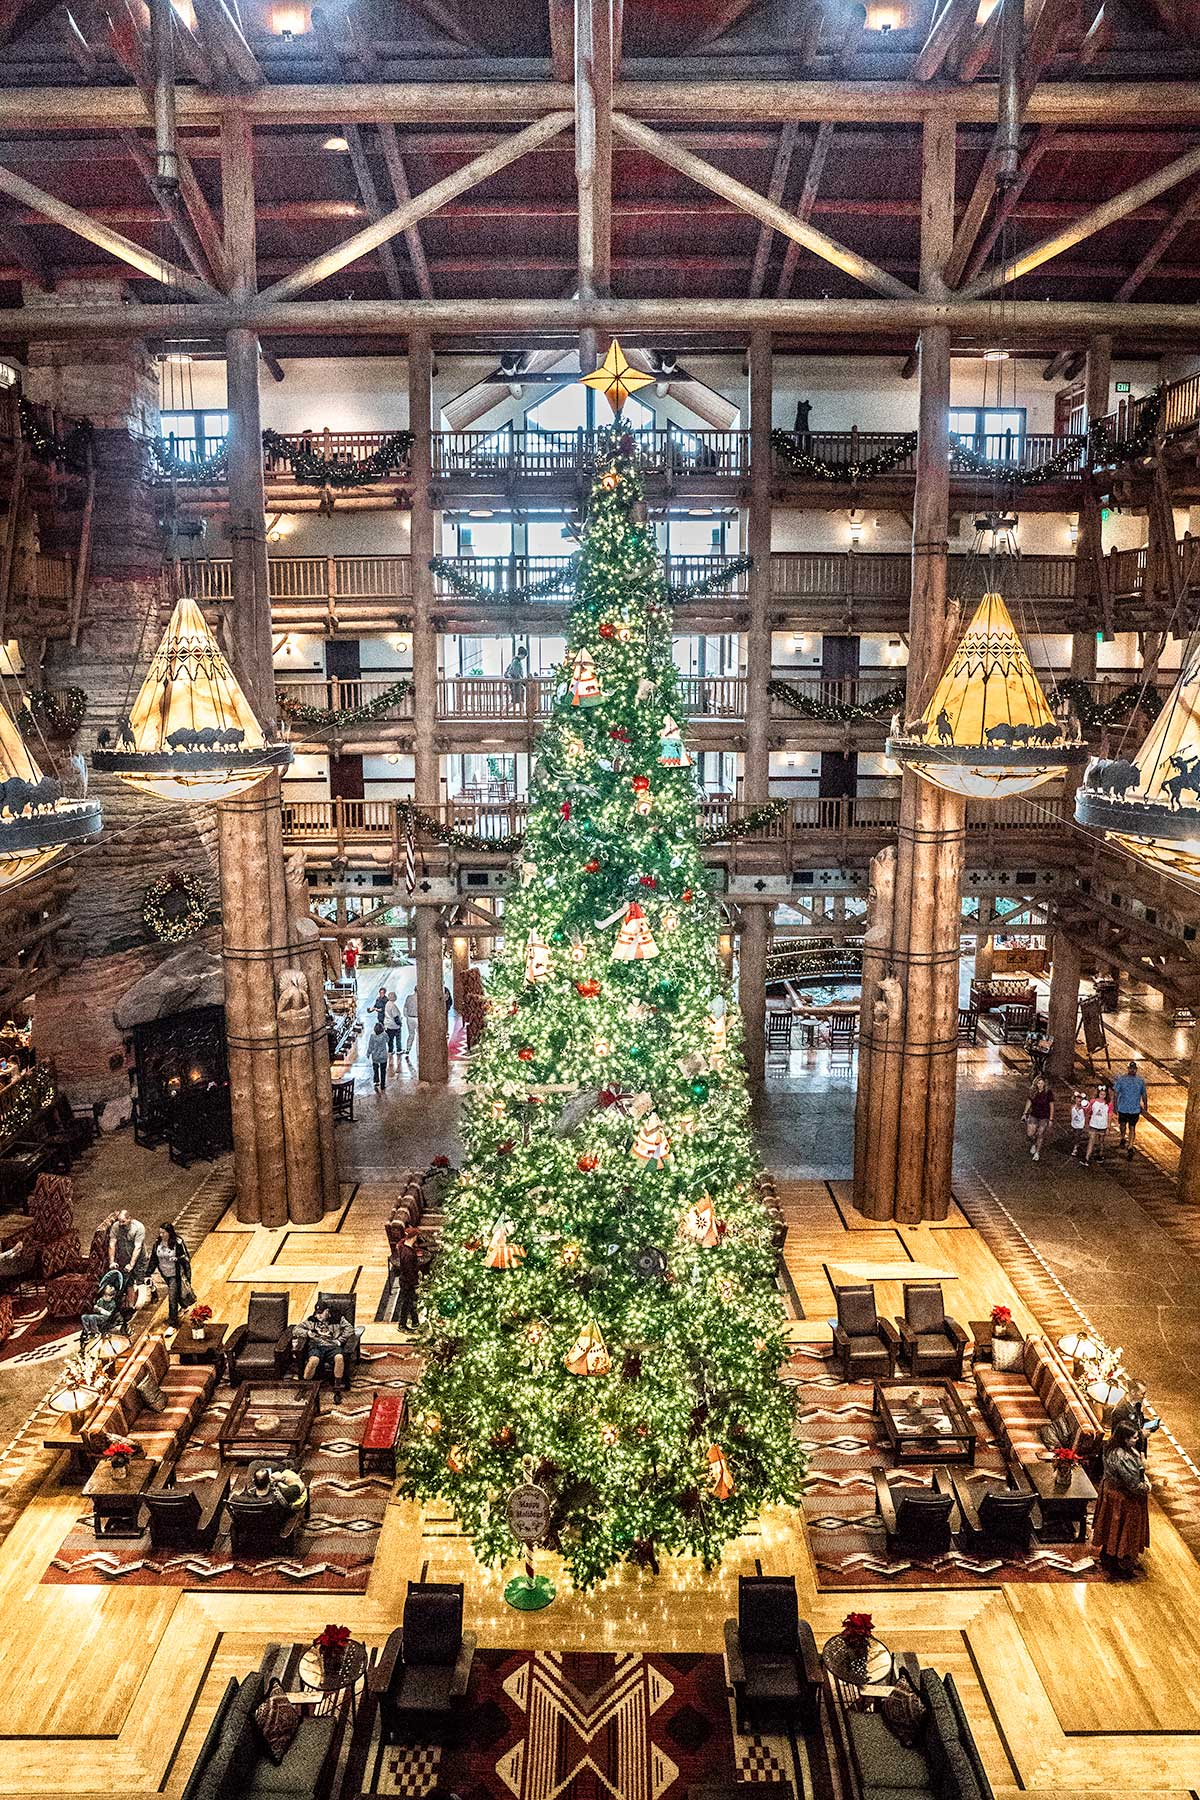 The-Towering-Tree-at-Disneys-Wilderness-Lodge